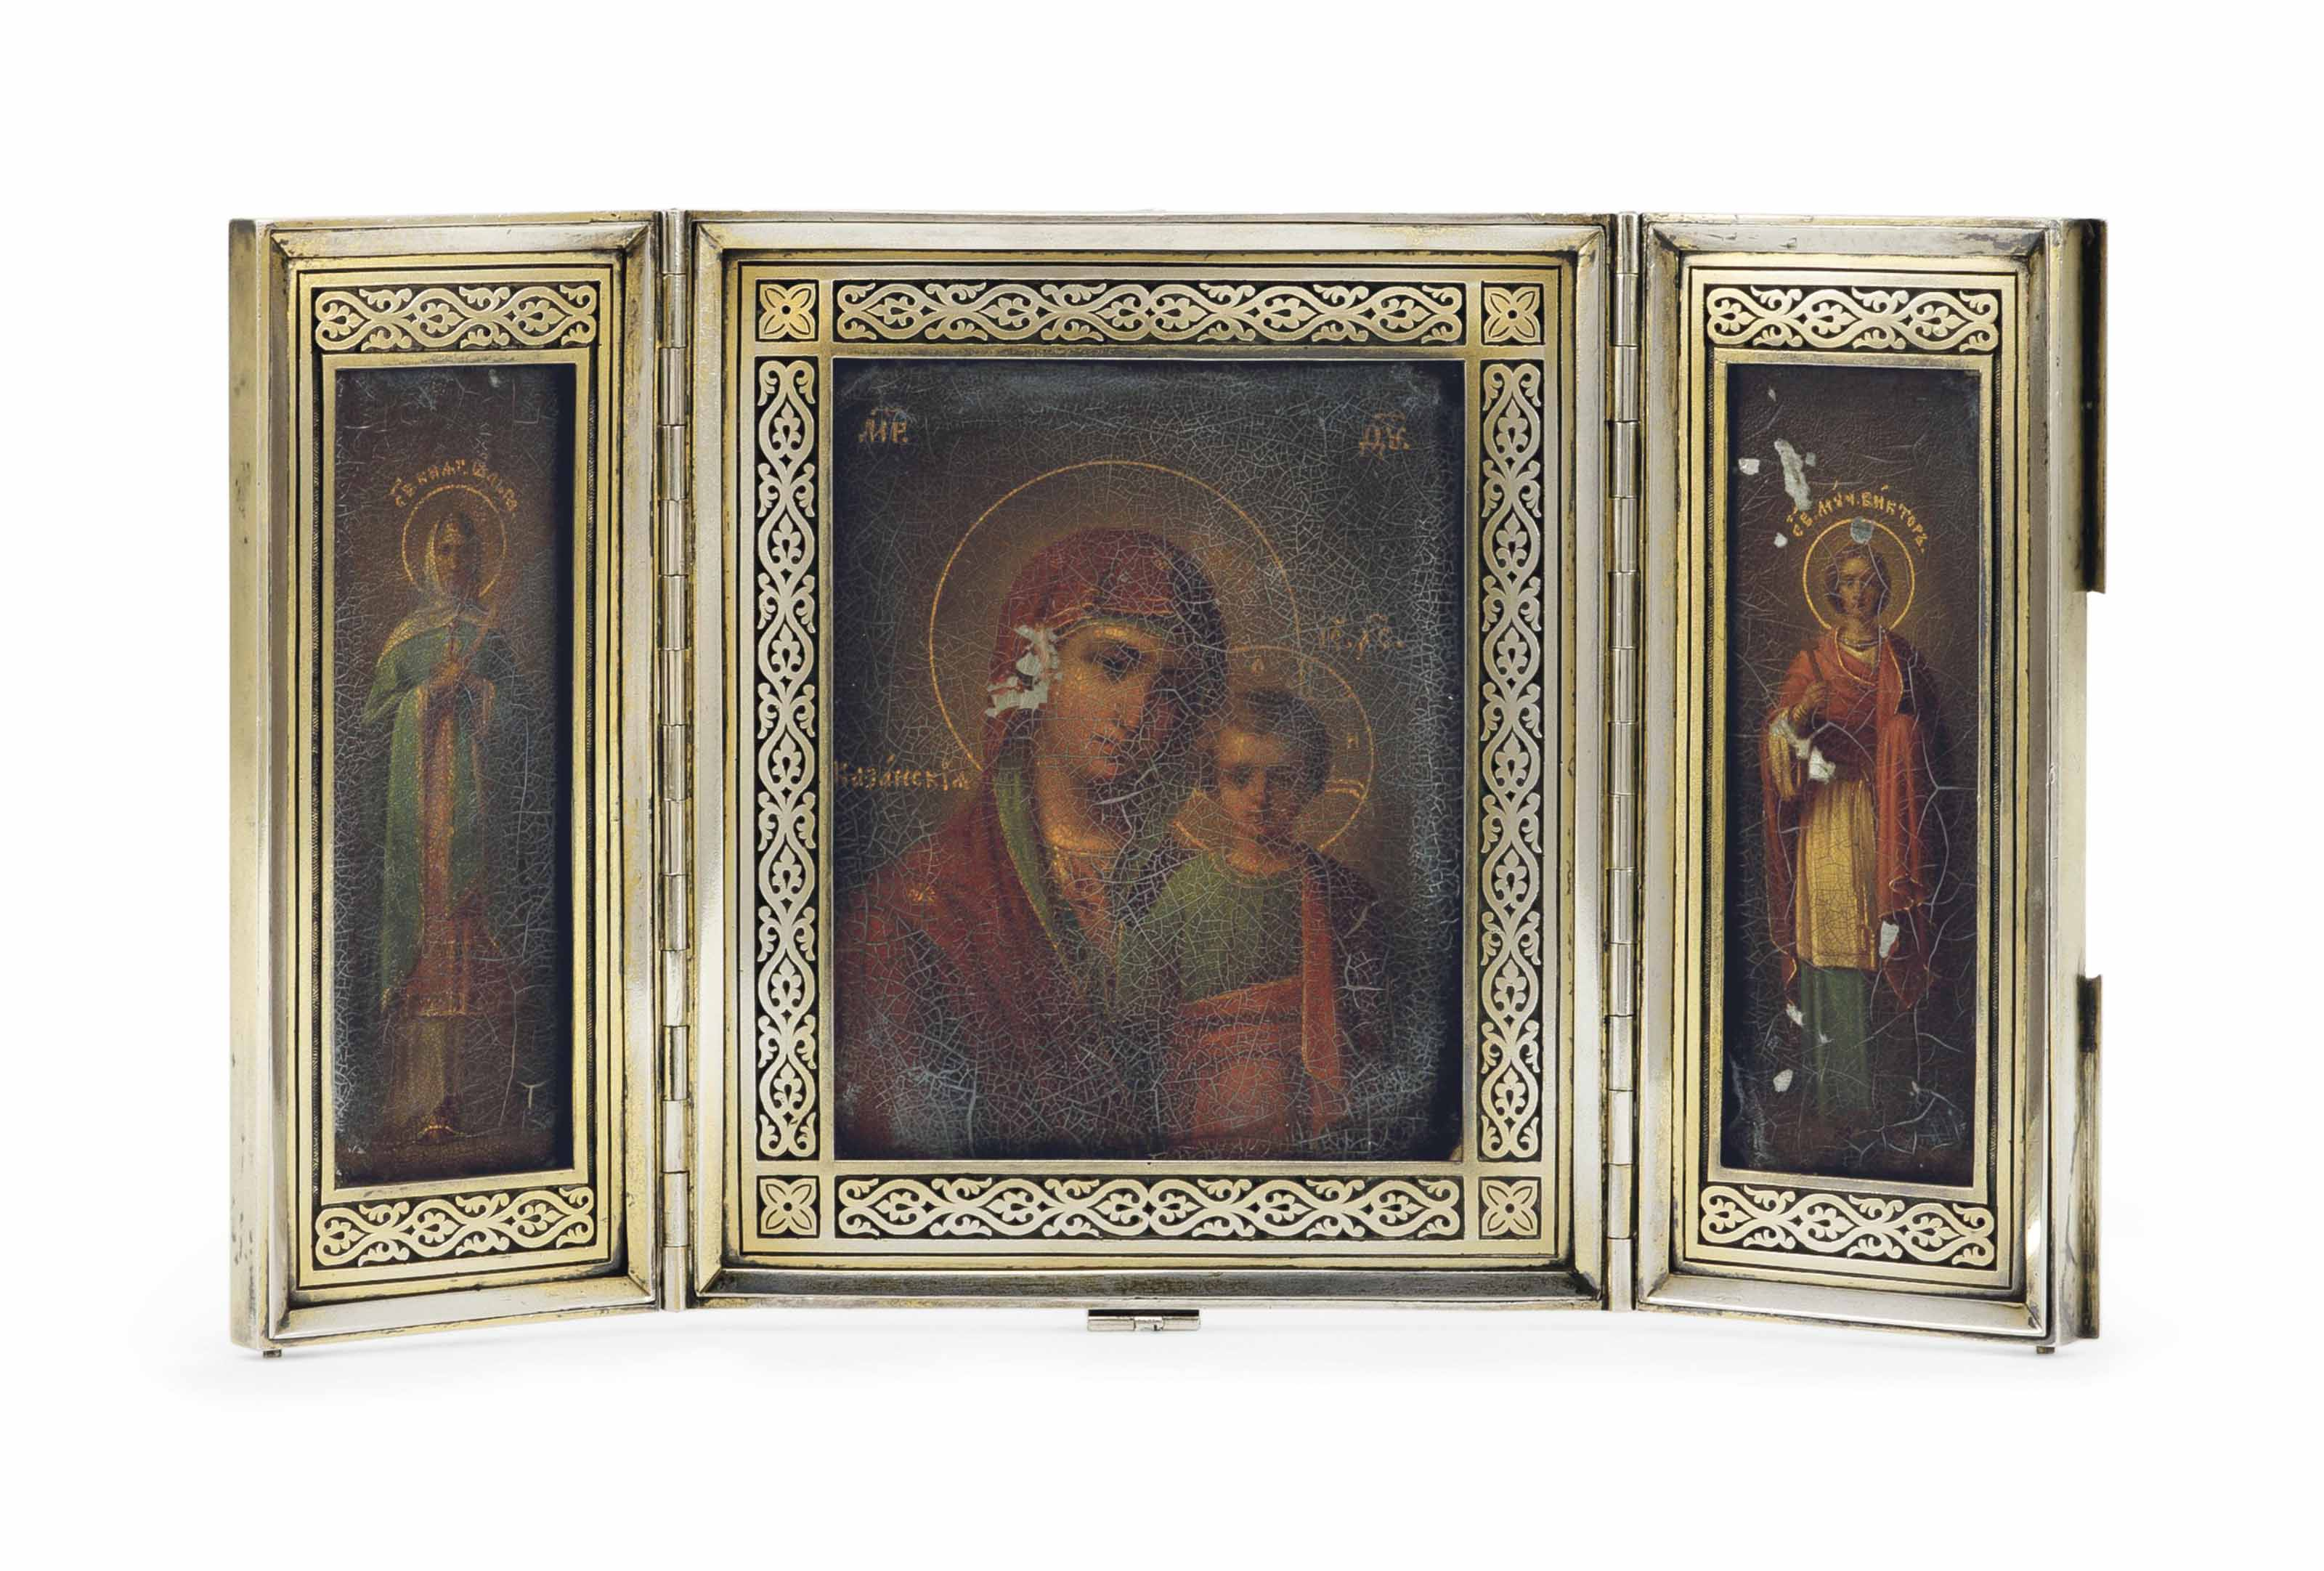 A PARCEL-GILT SILVER TRAVELLING TRIPTYCH